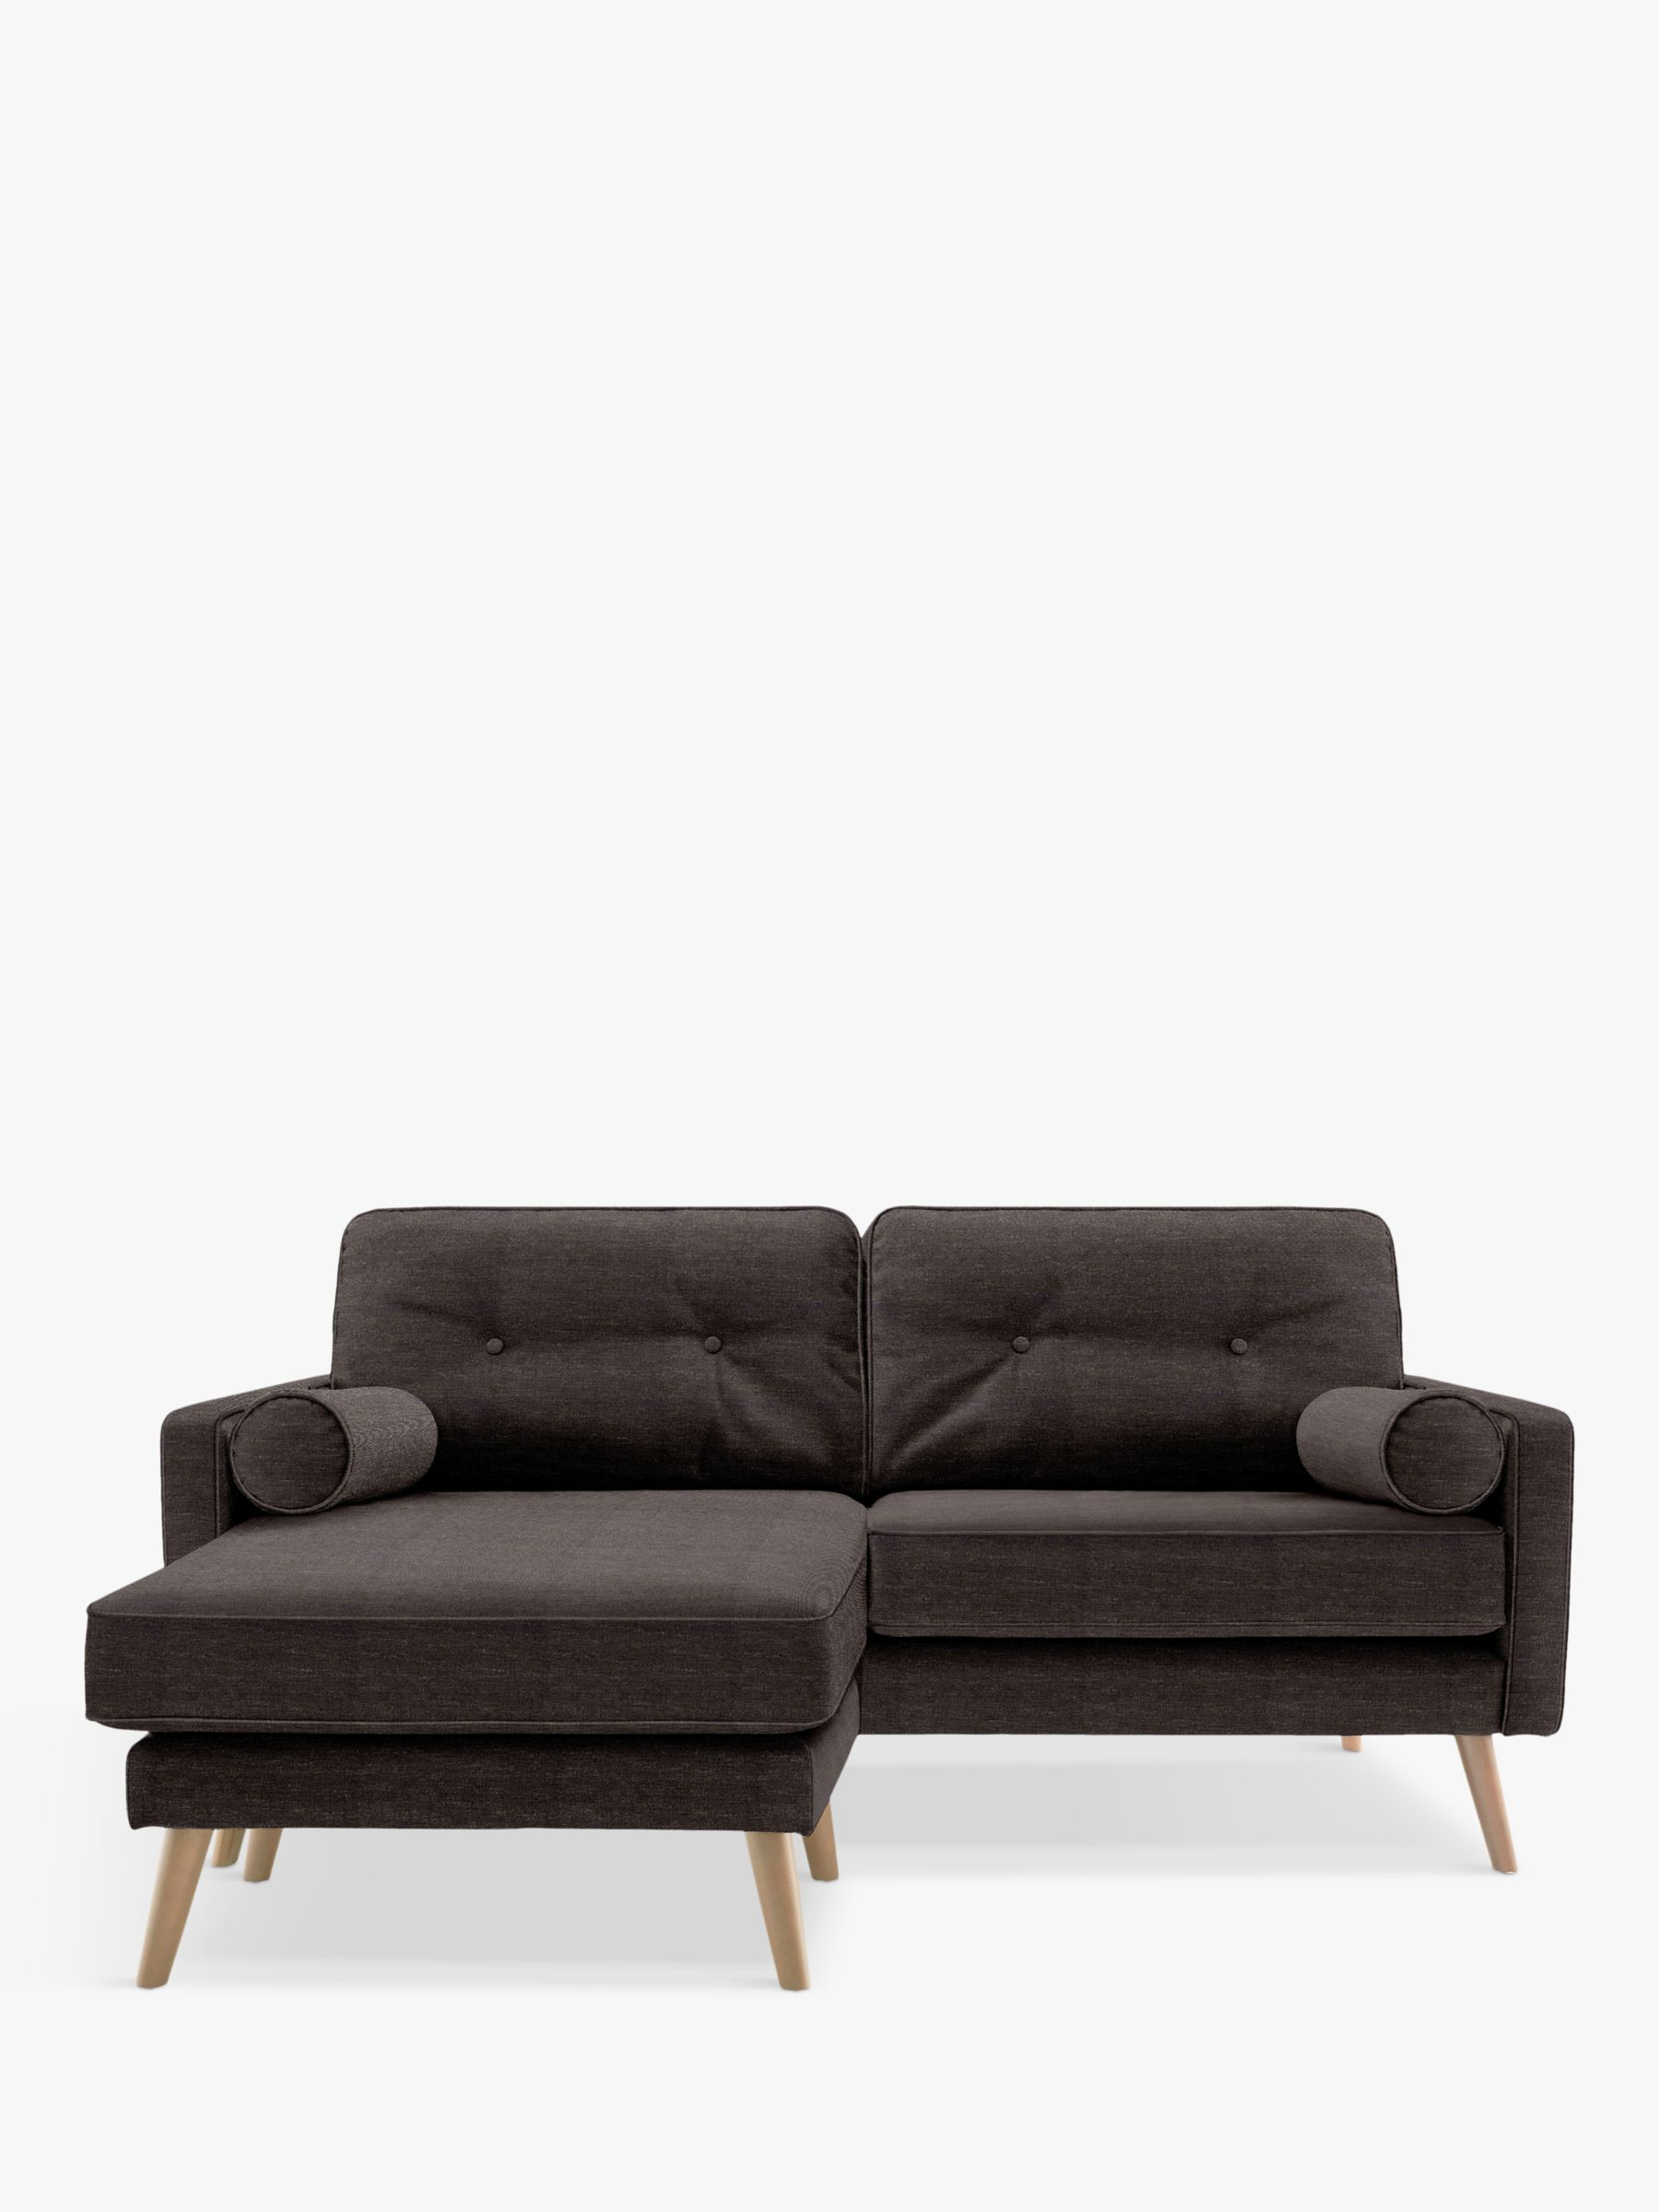 G Plan Vintage G Plan Vintage The Sixty Five Medium 2 Seater Chaise End Sofa